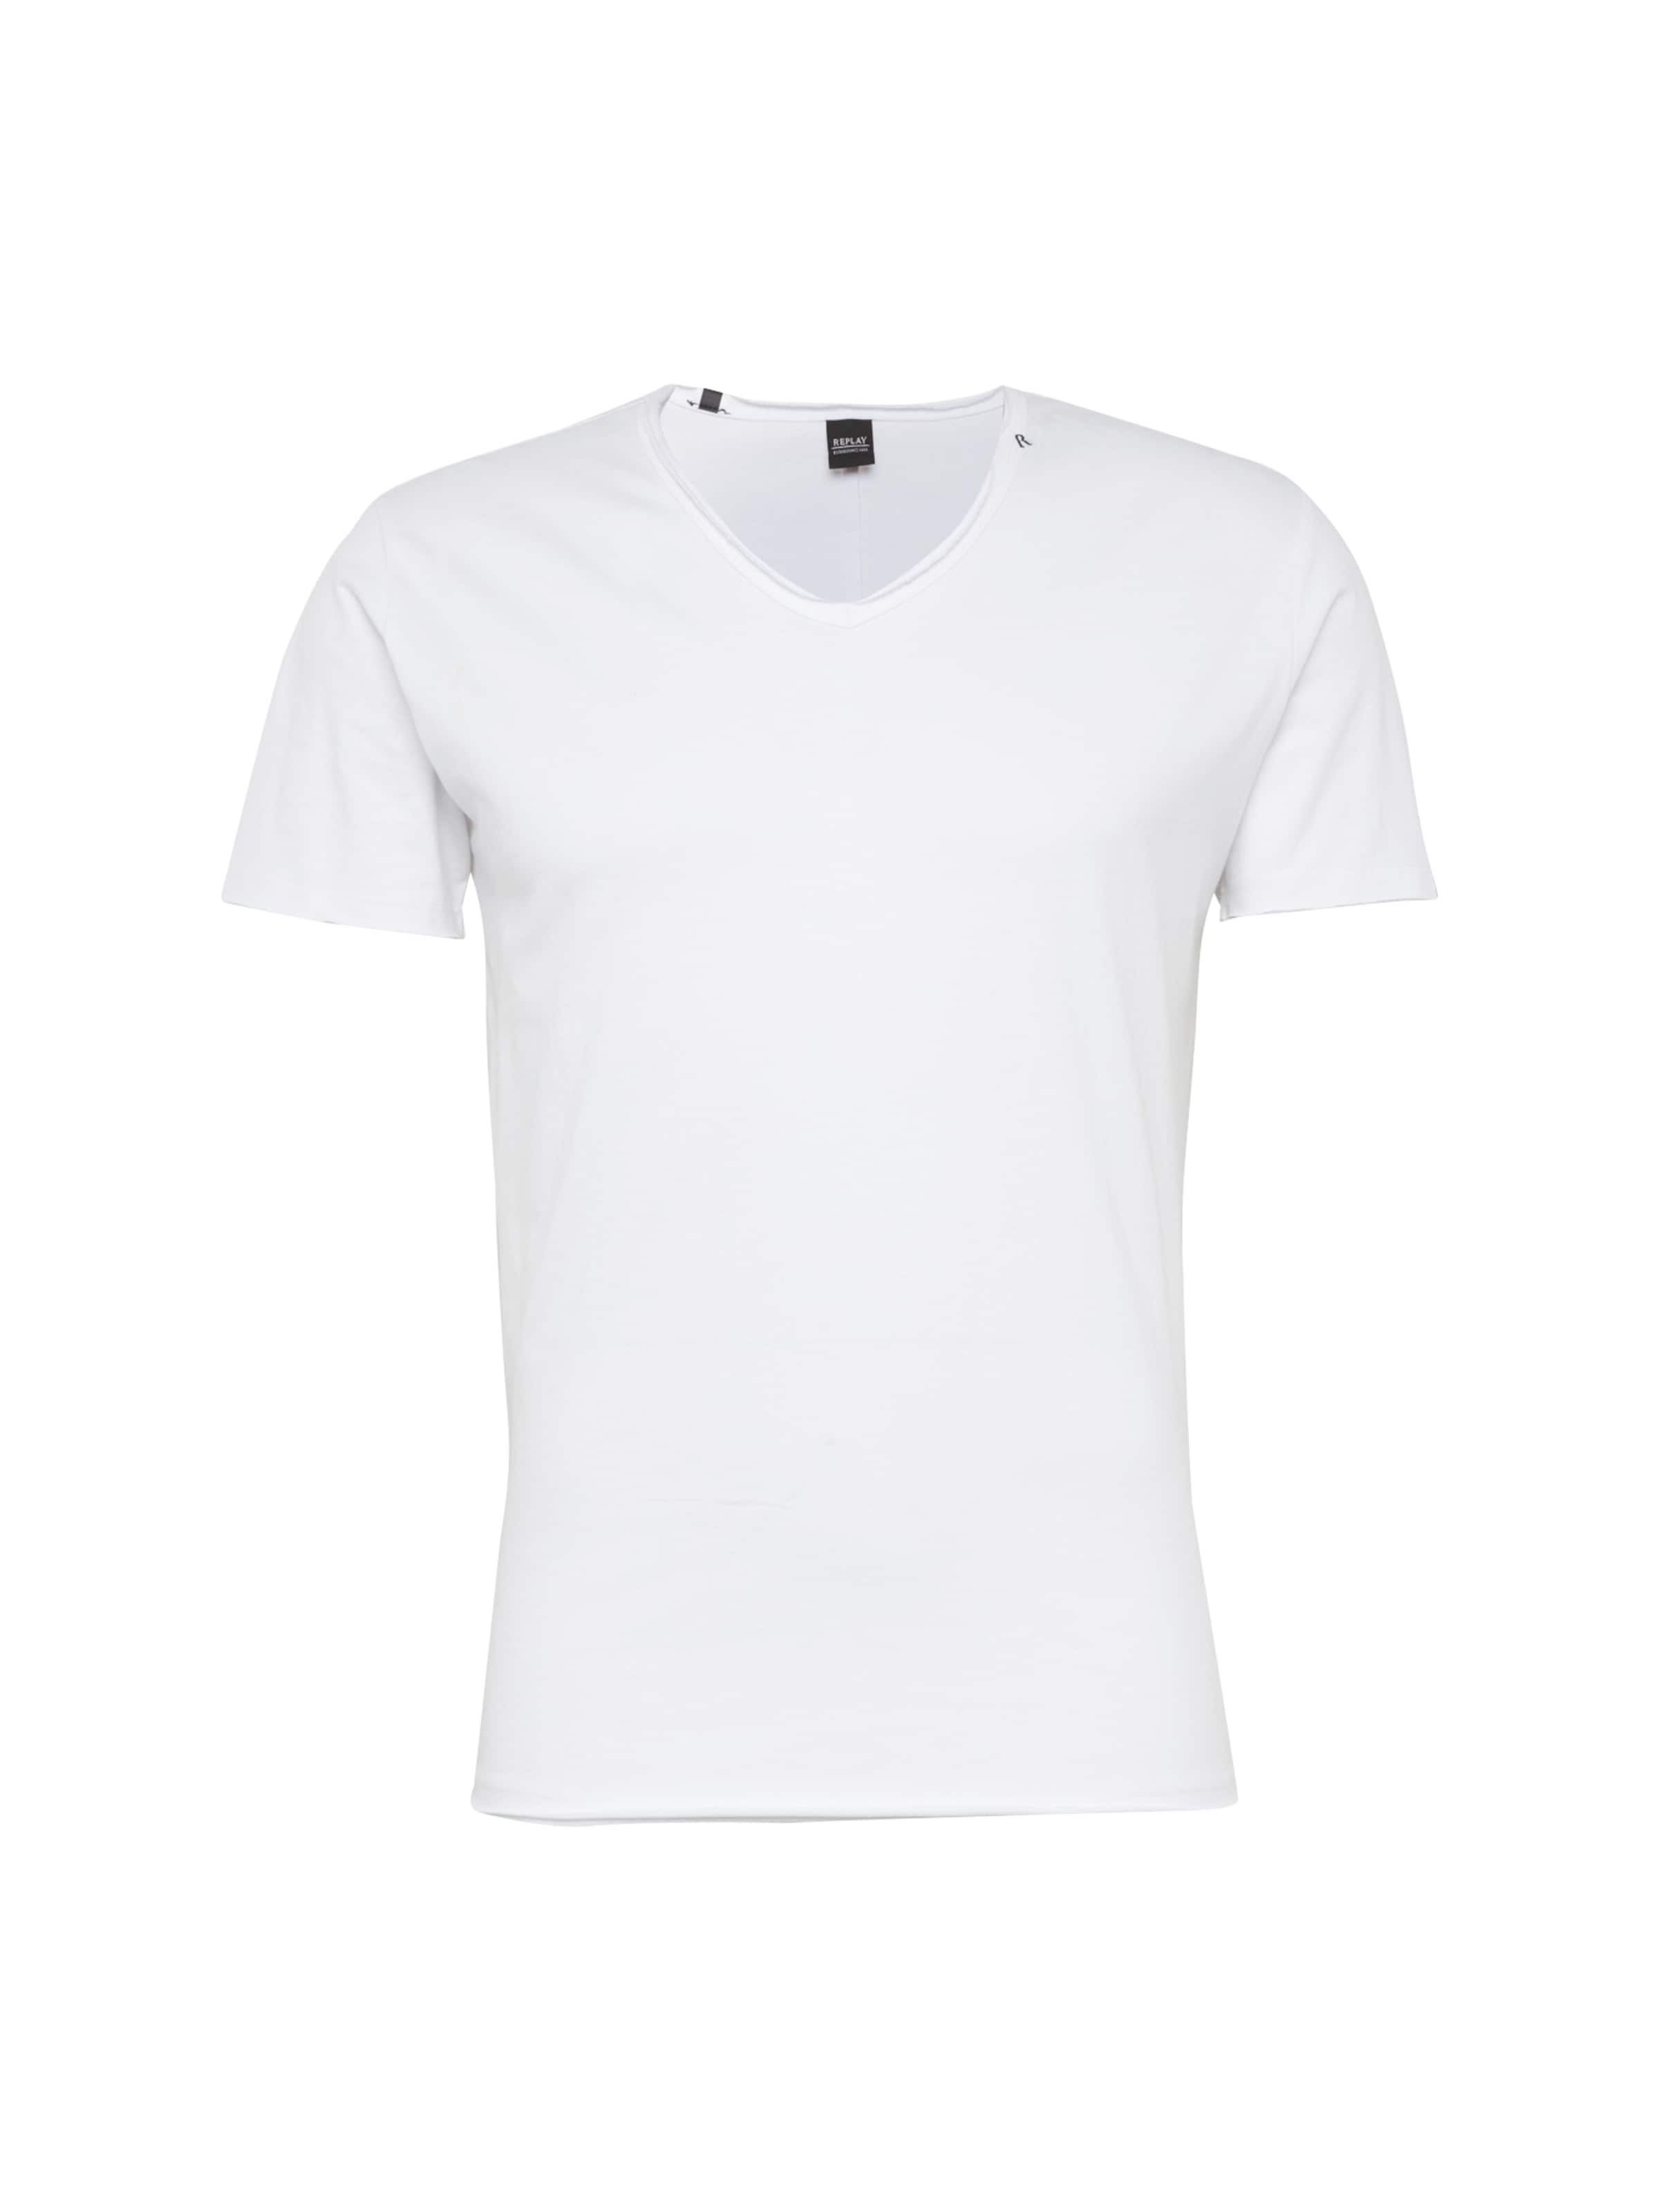 Replay Replay En En T shirt Replay shirt shirt T Blanc En Blanc T xBoCde